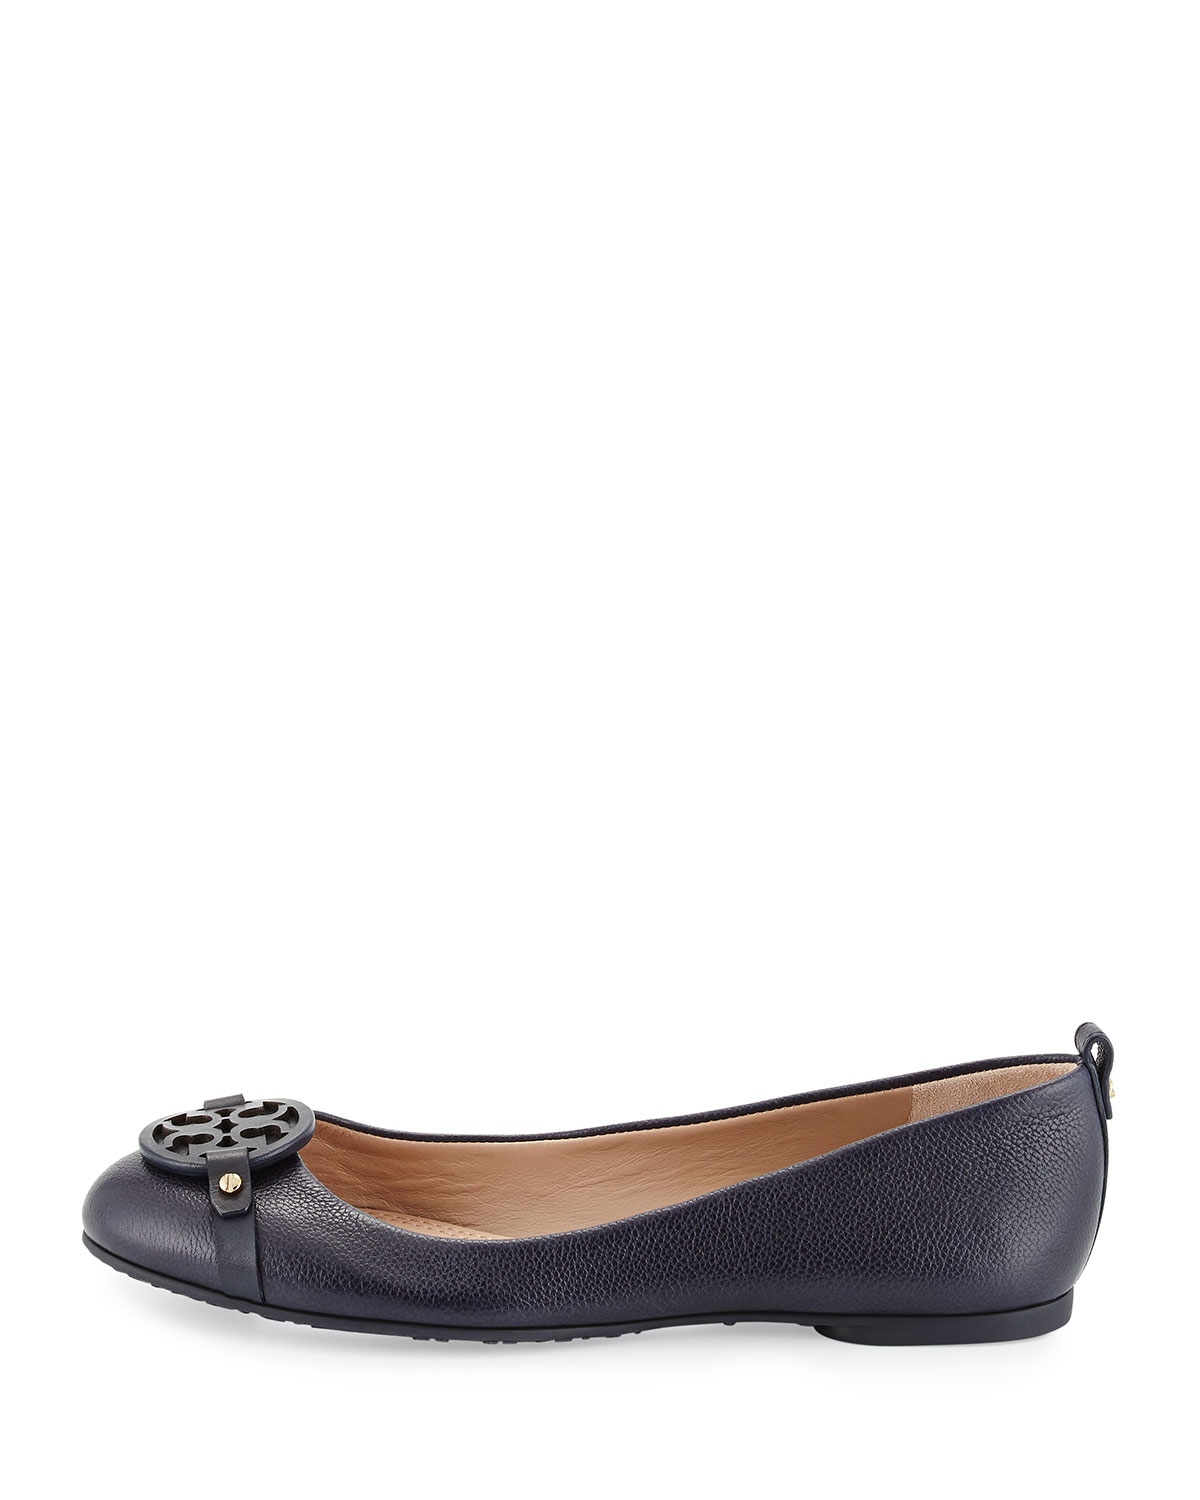 e2e75166cbf4 Lyst - Tory Burch Mini Miller Leather Ballet Flats in Blue